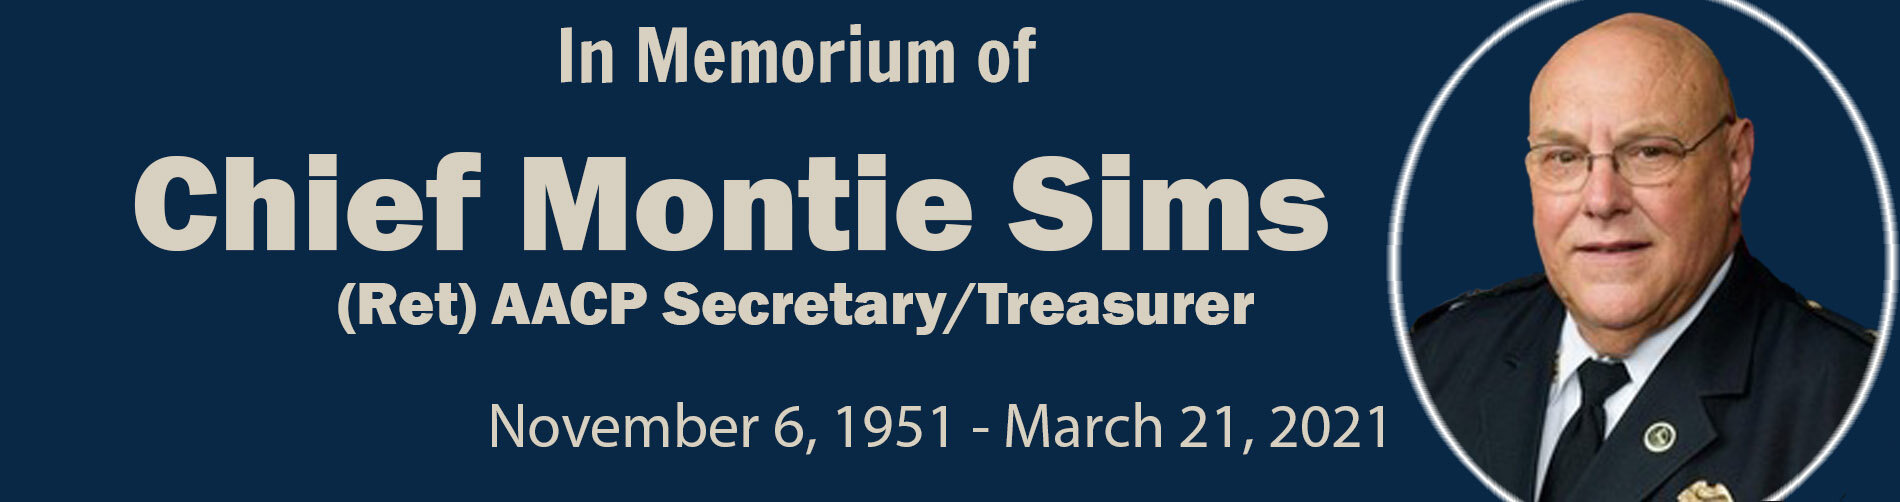 In Memorium of Chief Montie Sims (Ret) AACP Secretary/Treasurer